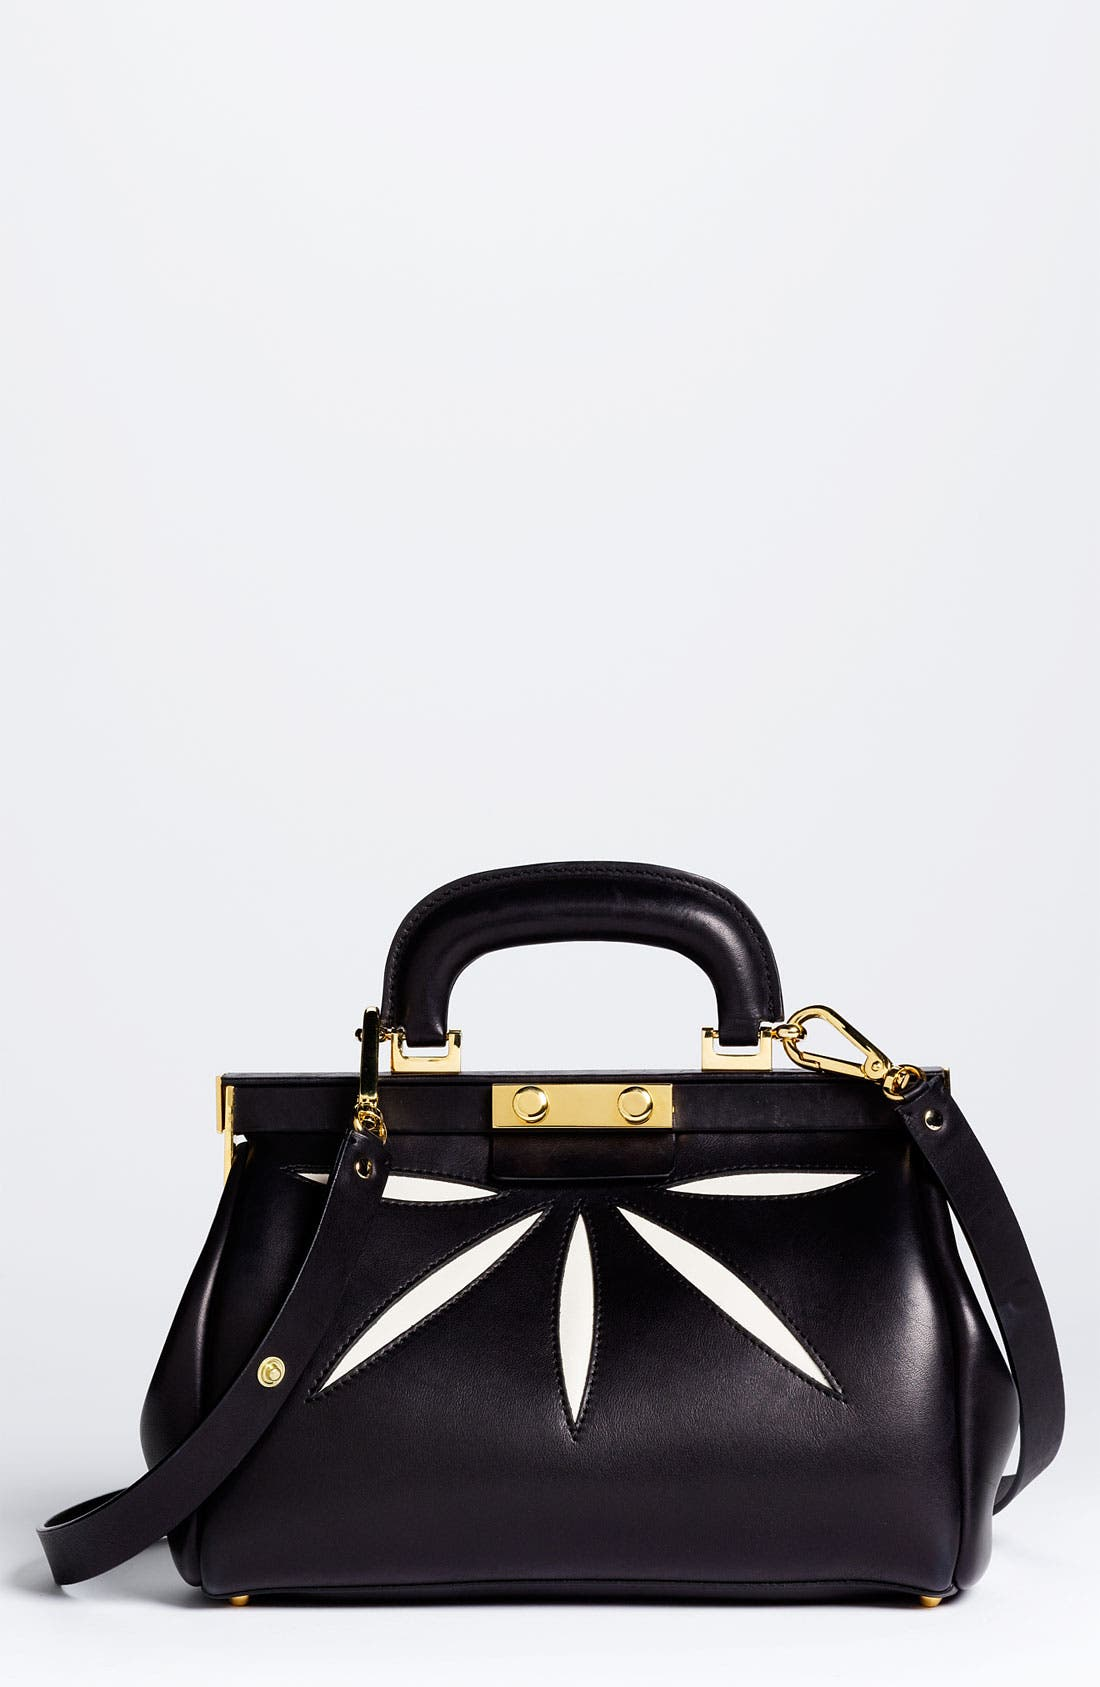 Main Image - Marni 'Mini' Leather Frame Bag